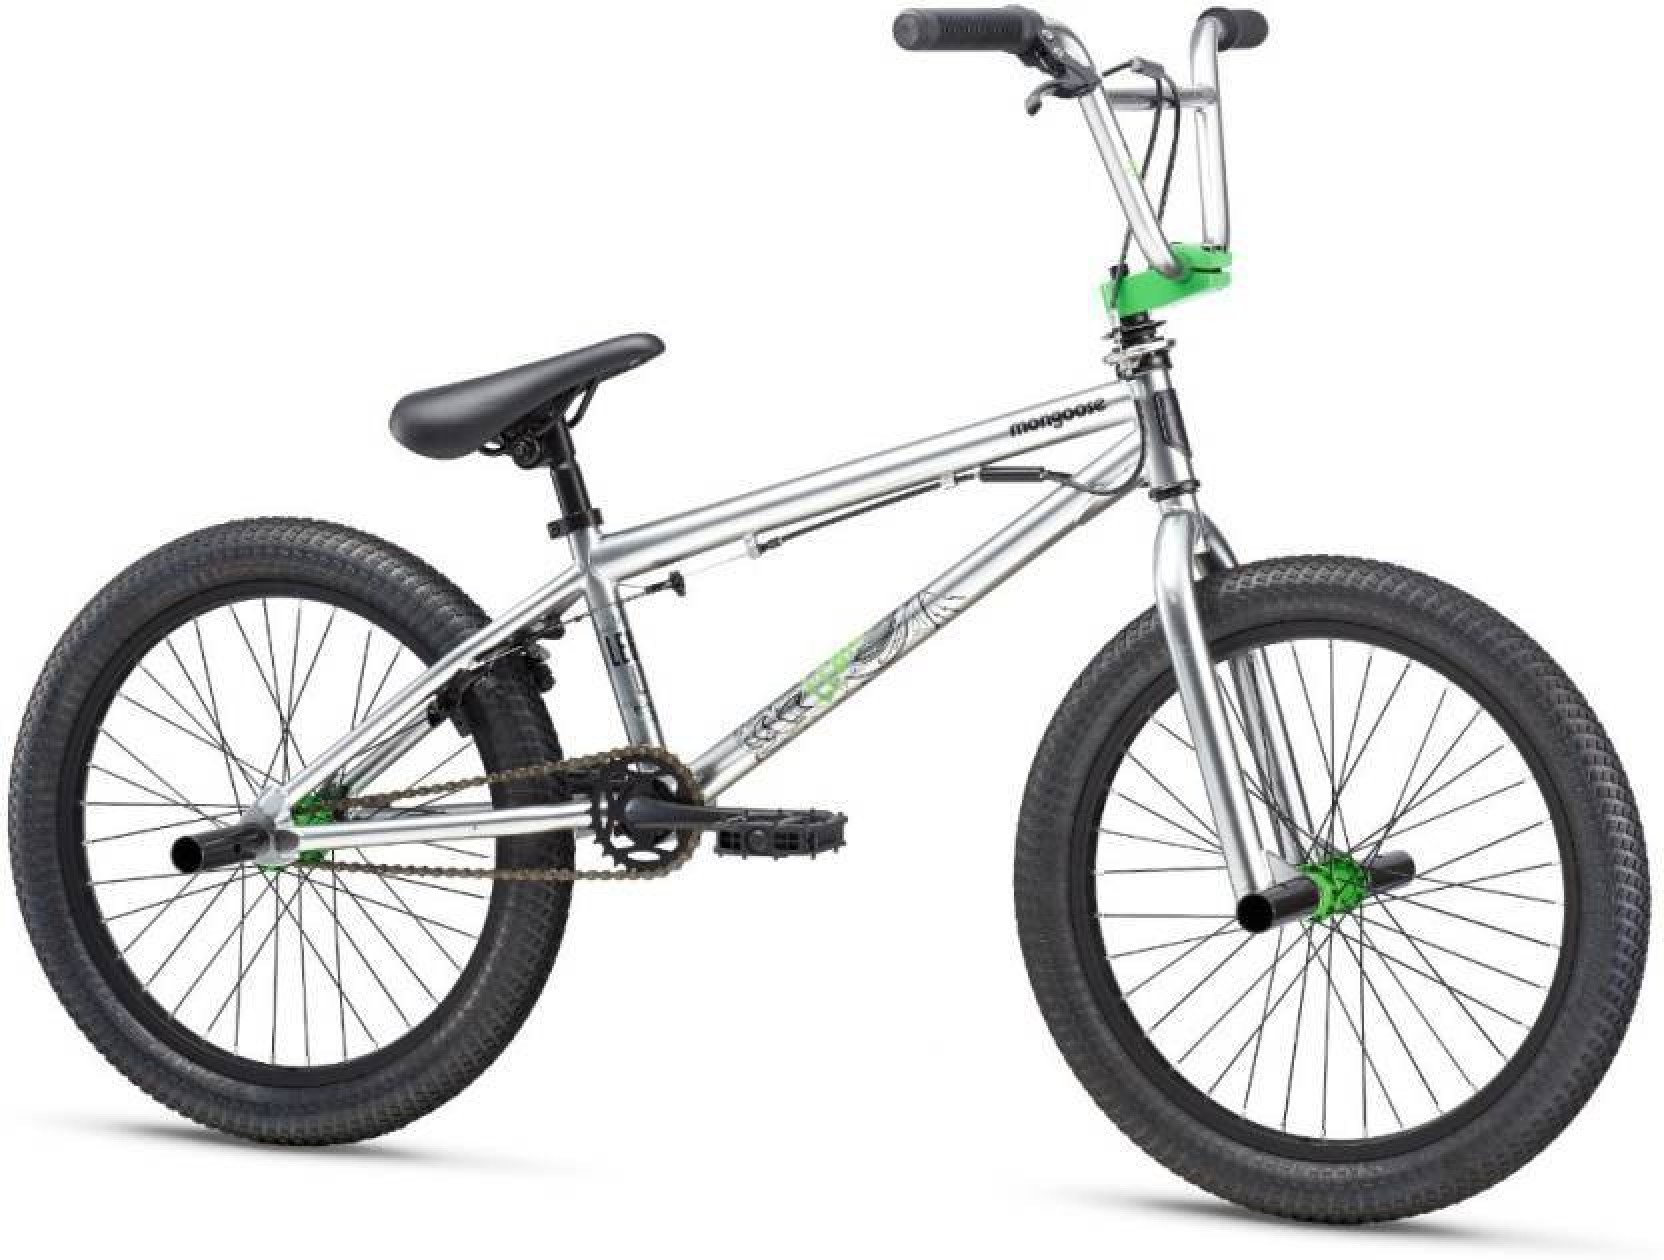 Mongoose Legion L10 20 T Bmx Cycle Price In India Buy M350 Wiring Diagram Add To Cart